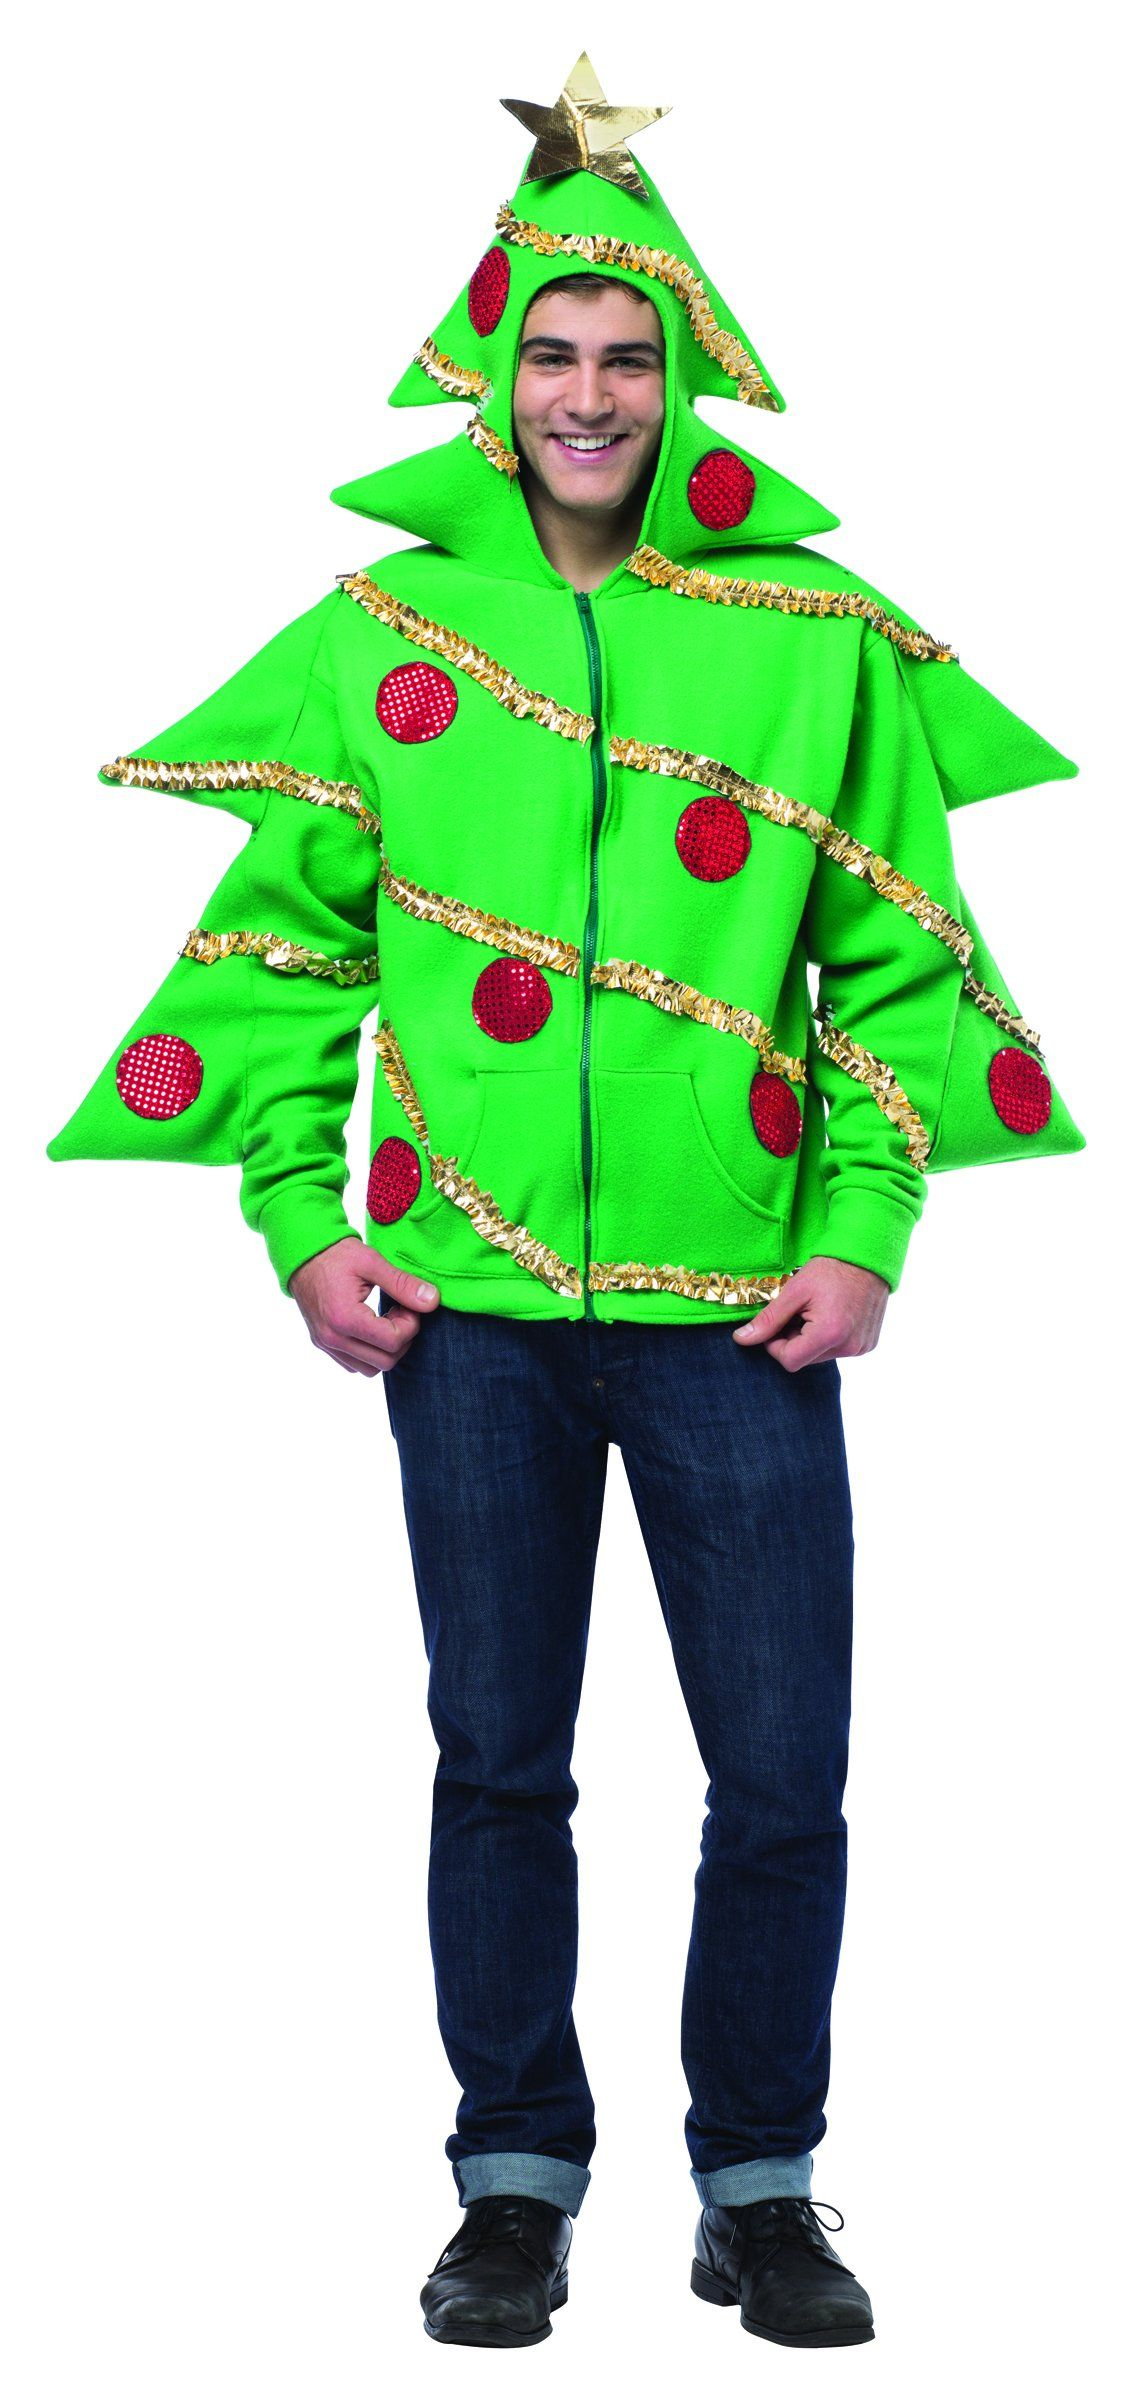 2b935532aa0 Christmas Tree Costume Plus Size